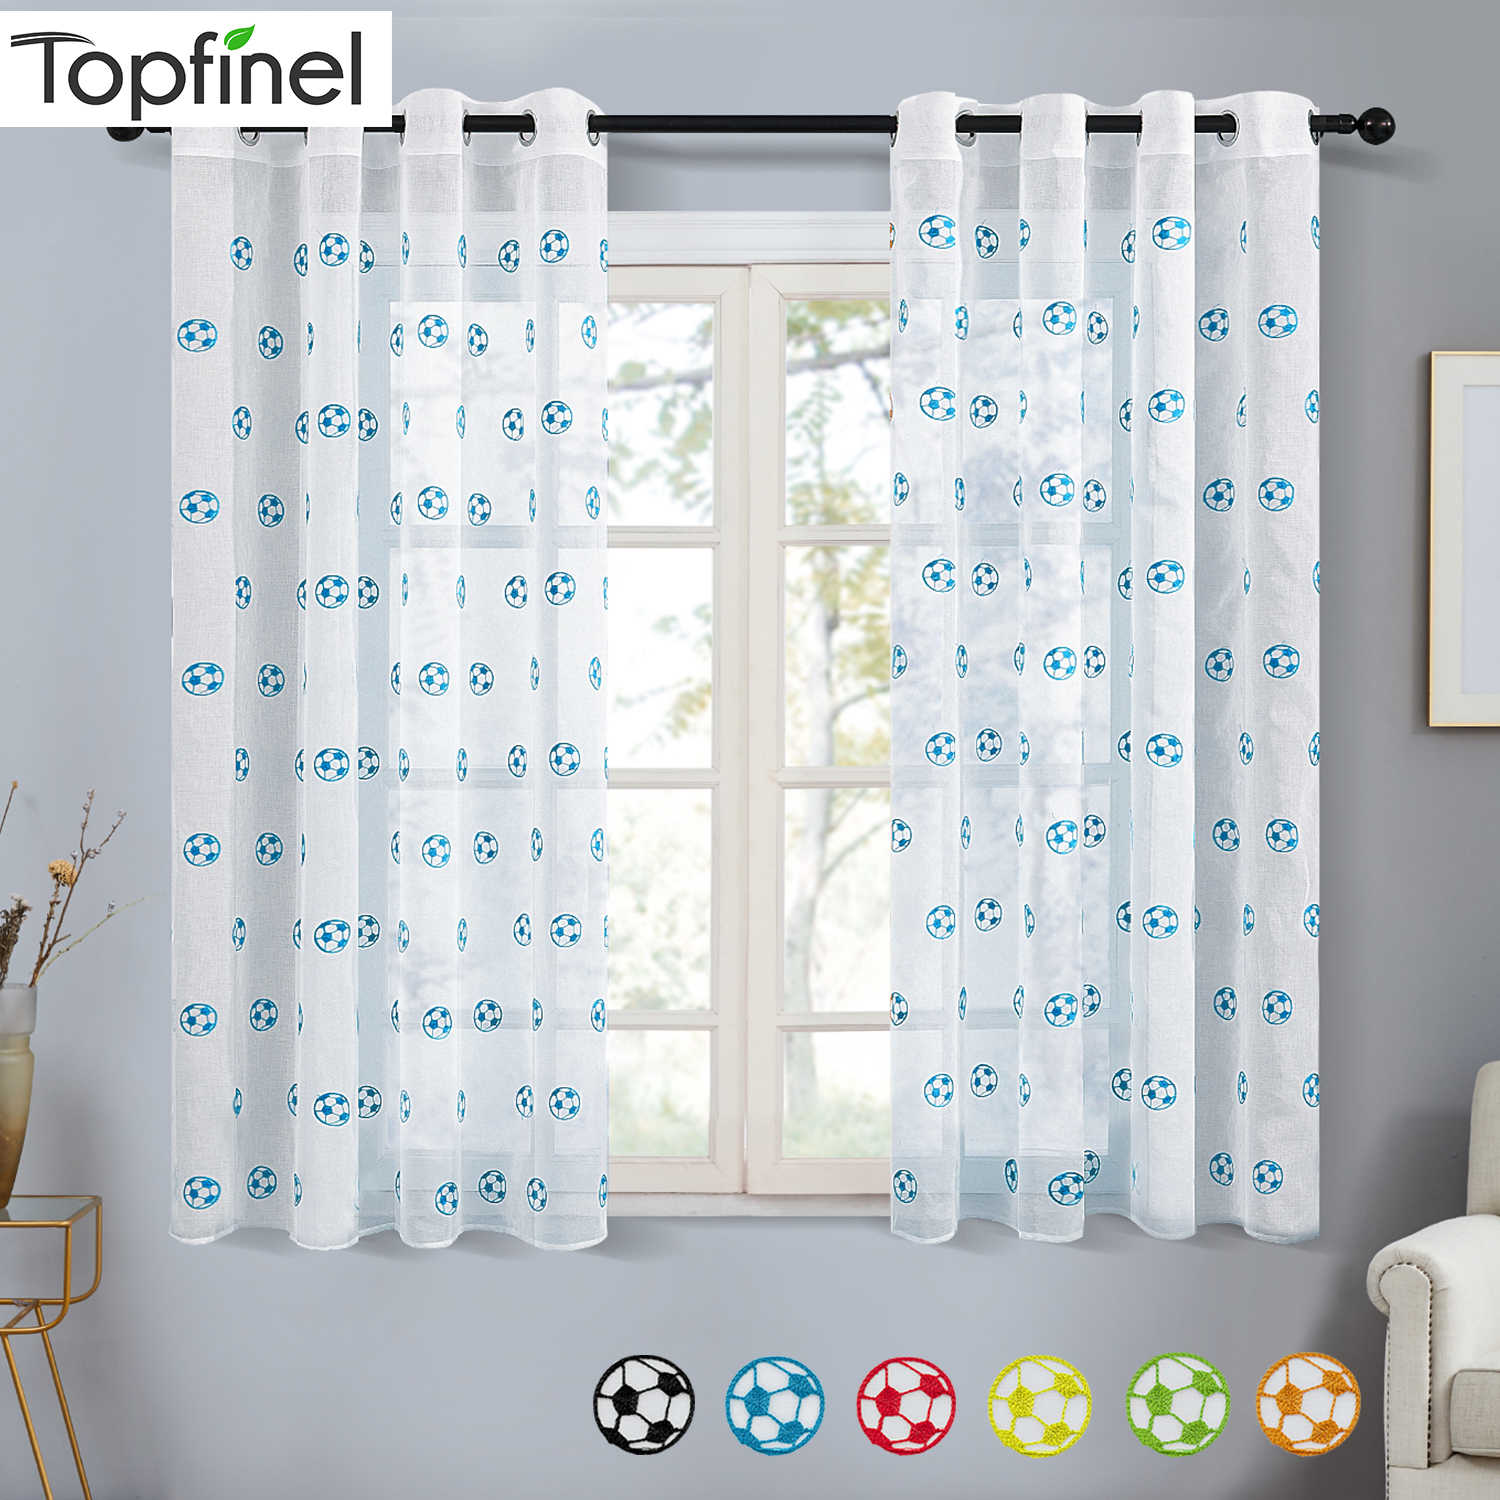 Topfinel Embroidered Short Sheer Curtains For Living Room Bedroom Boys Room Football Pattern Window Treatment Voile Curtains